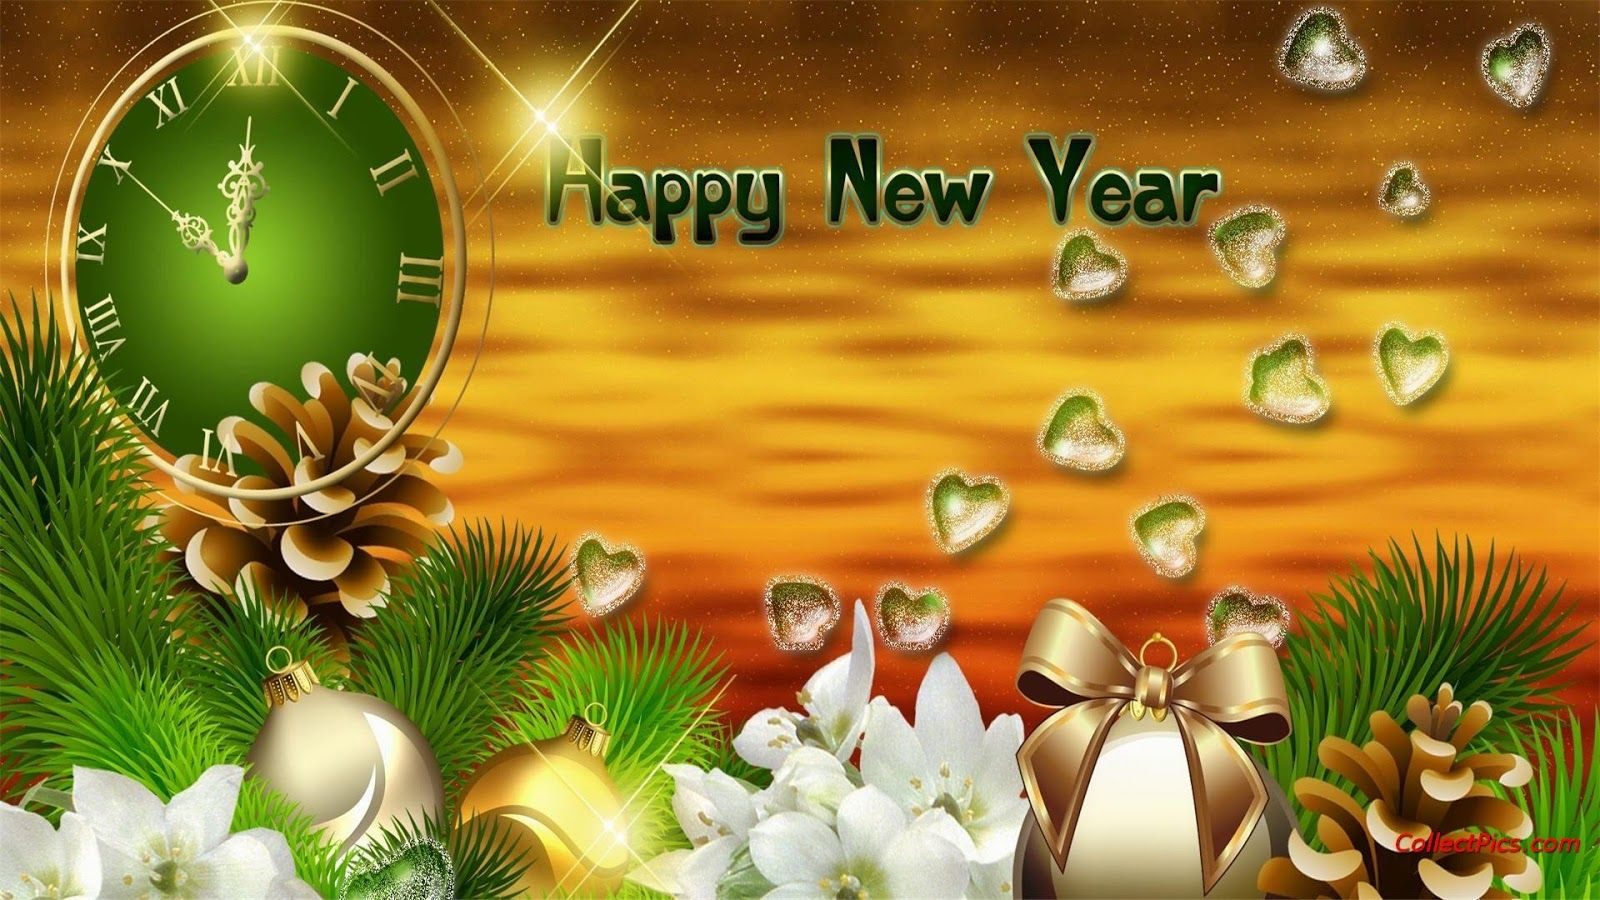 Free Download Happy New Year 2017 Desktop Wallpapers Mobile Themes